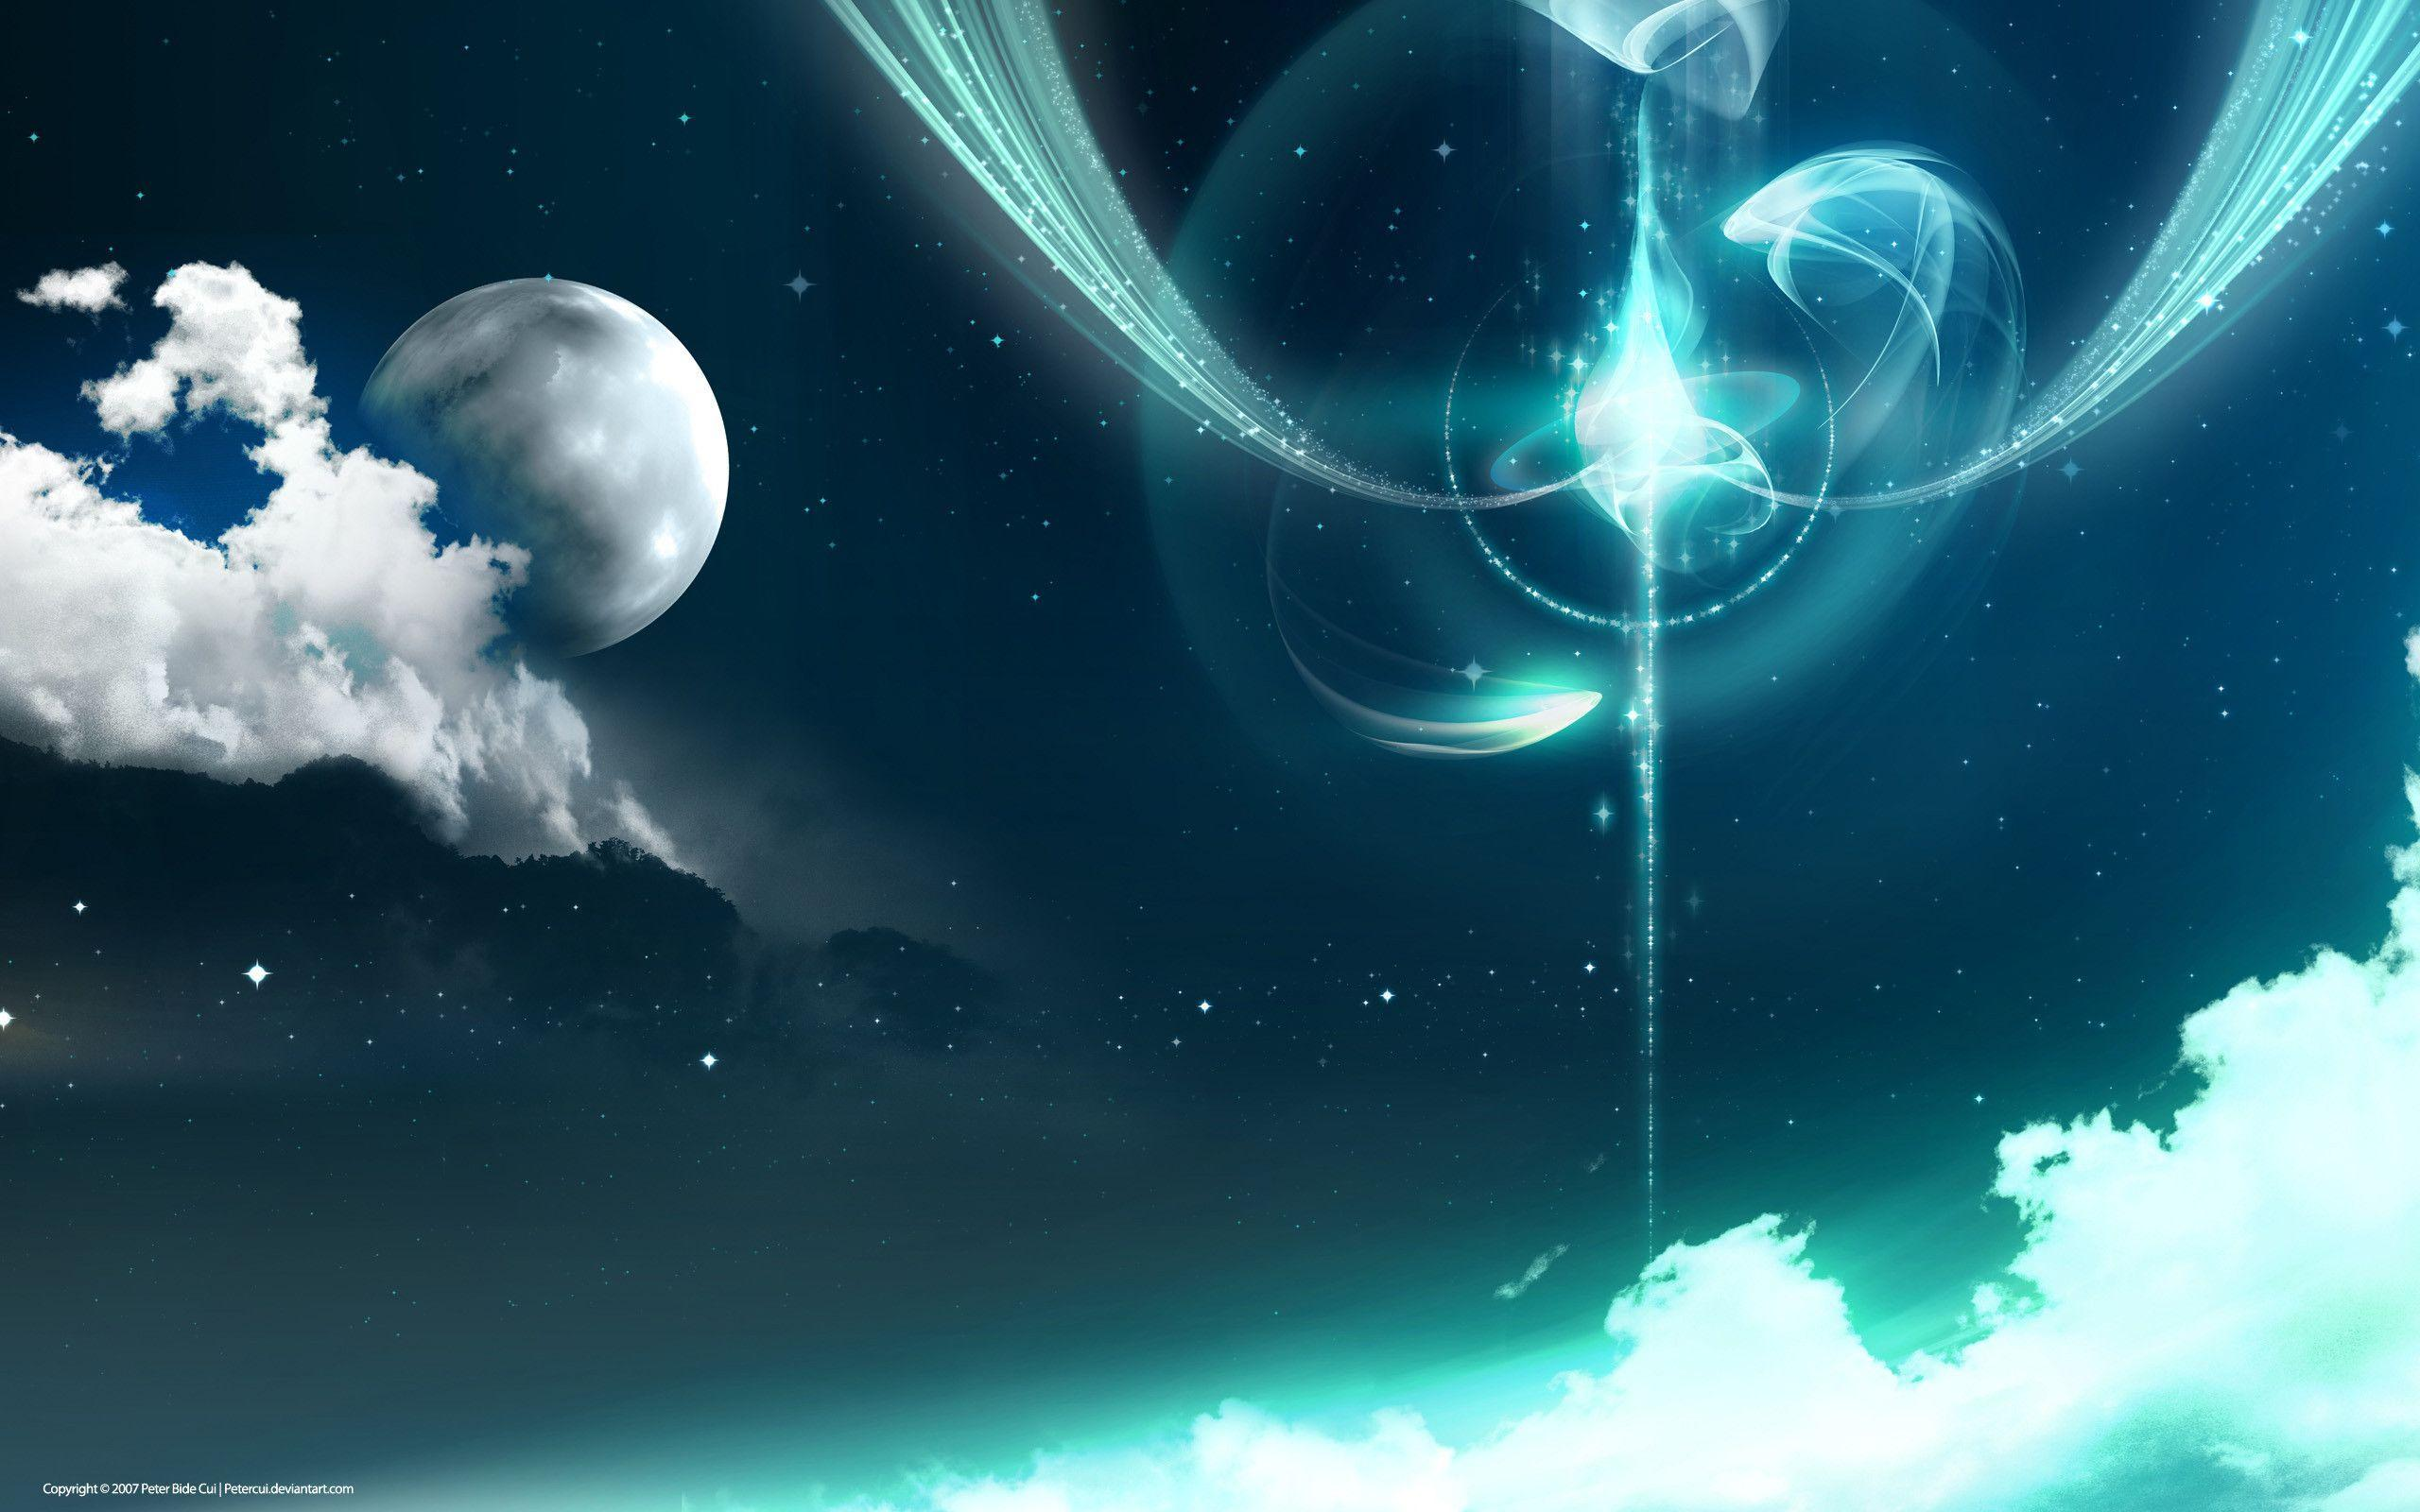 Cool outer space wallpapers Series 6p Free Wallpaper,Free Desktop